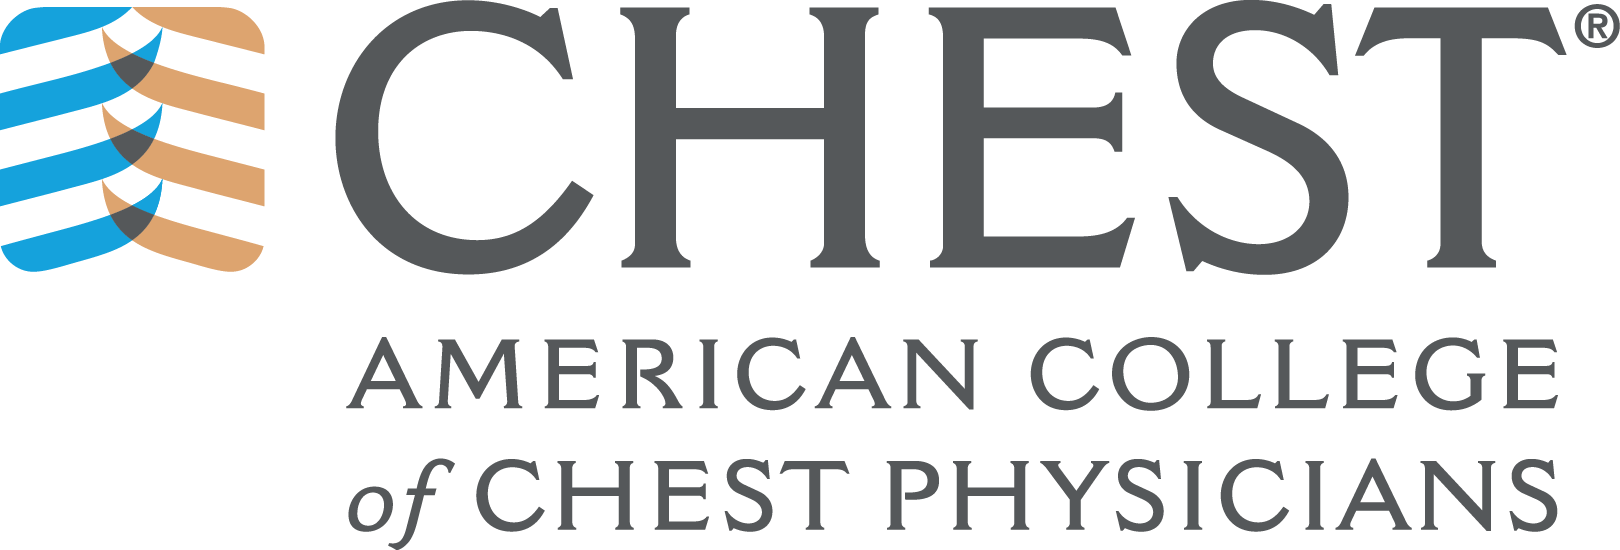 Explore the experience of the American College of Chest Physicians.